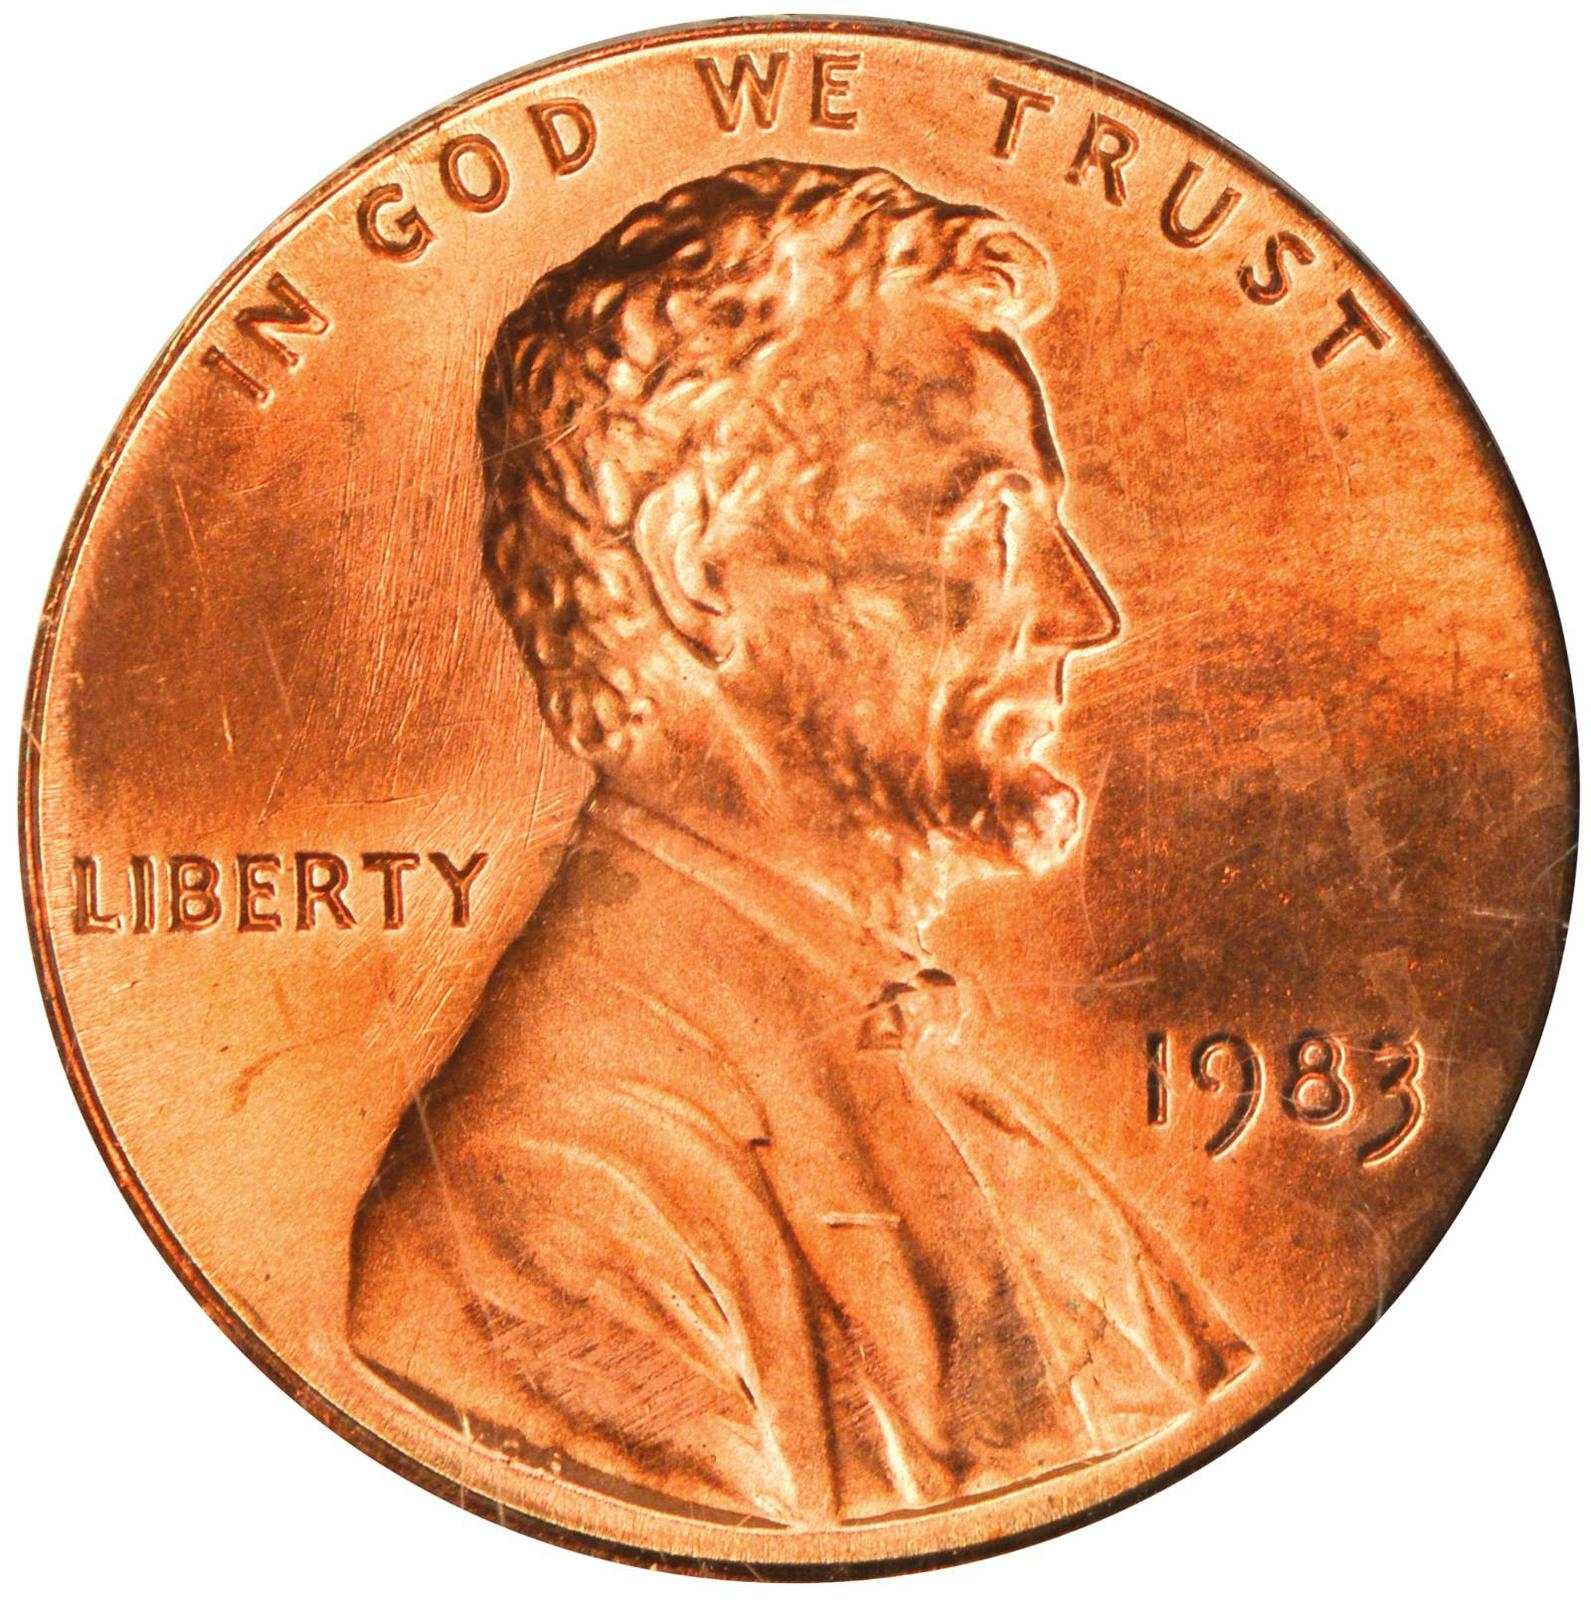 Value Of 1983 Double Die Lincoln Cents